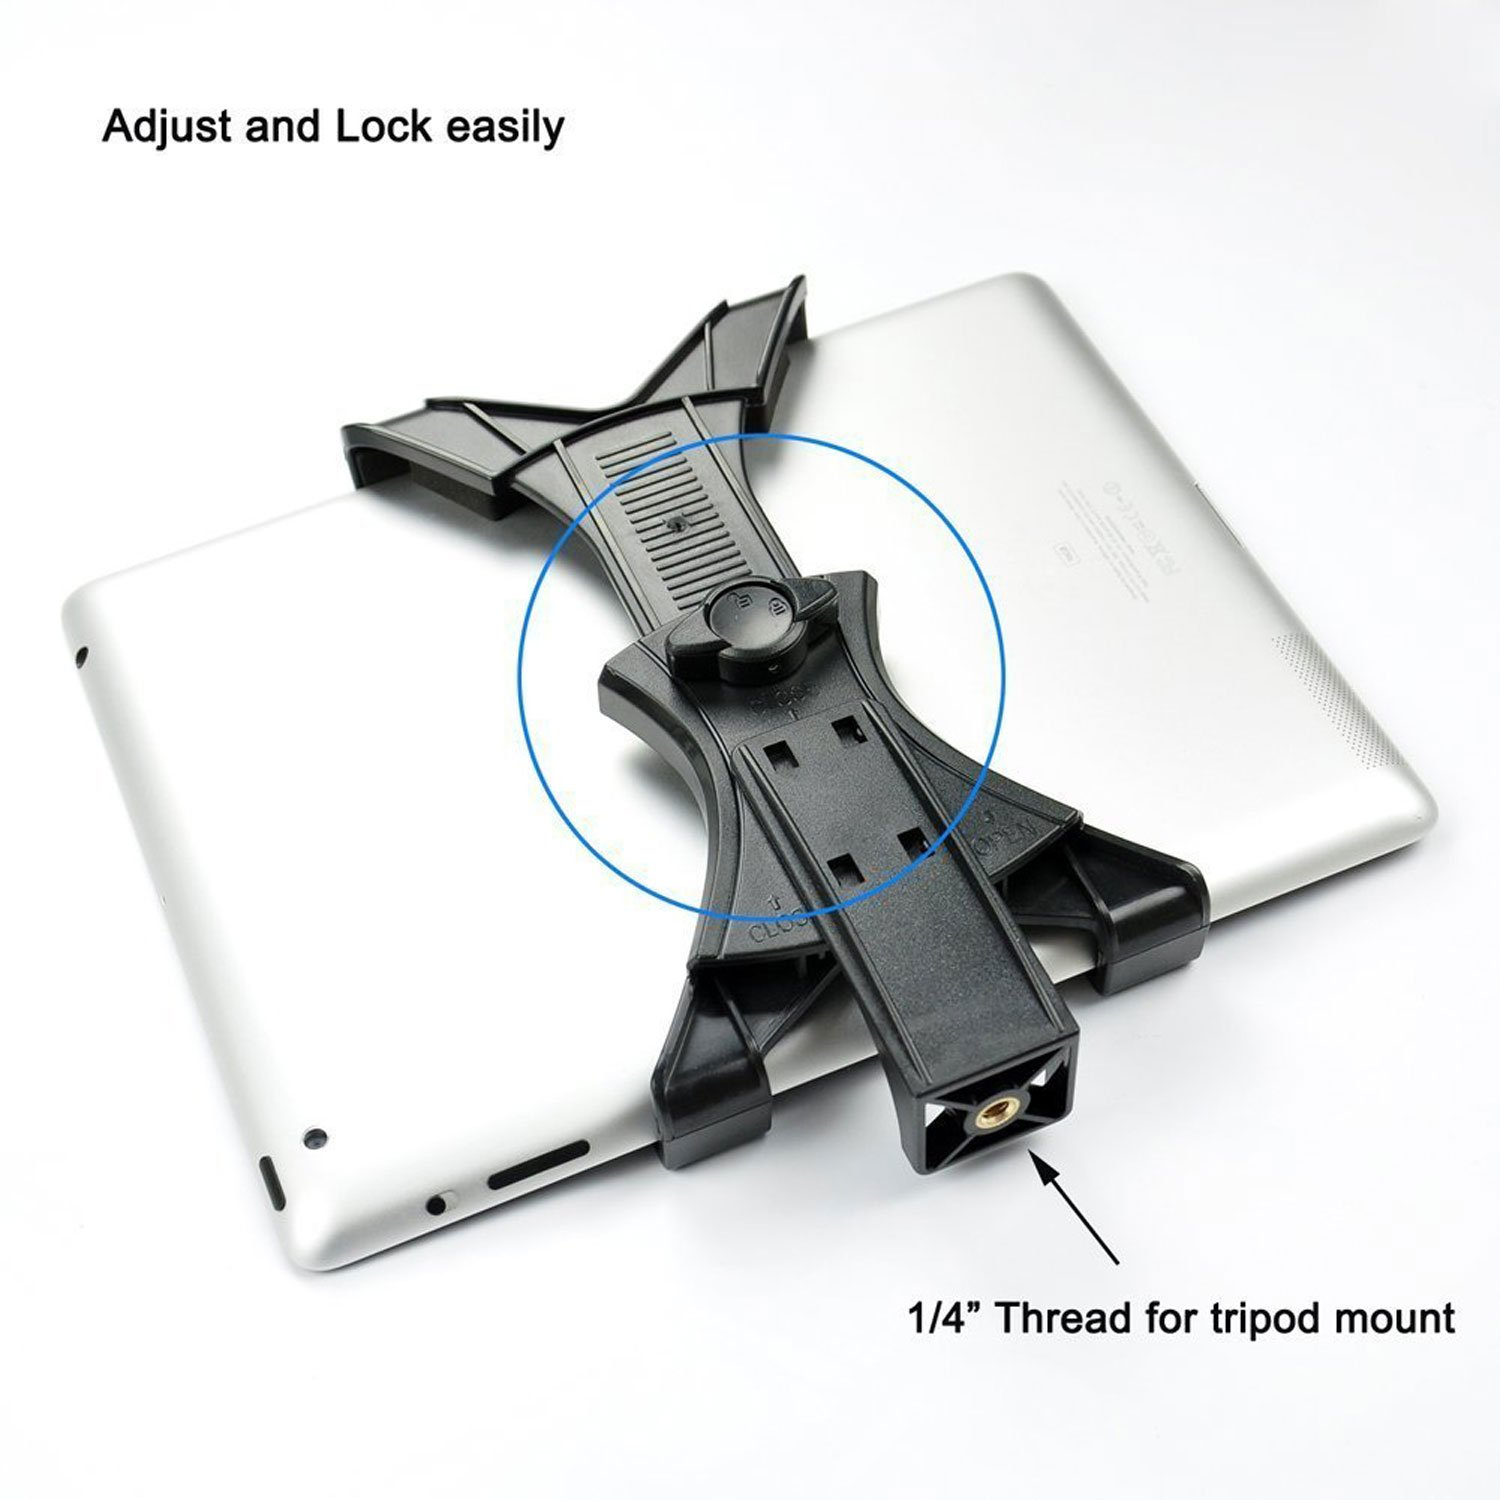 Mudder Universal Tablet Tripod Mount Adapter For Ipad Samsung Tab Re Replacing The 3 Wire Power Cord From Old Heathkit Weather Station And Other Tablets Phablets Or Smart Phones Use On Monopod Selfie Stick